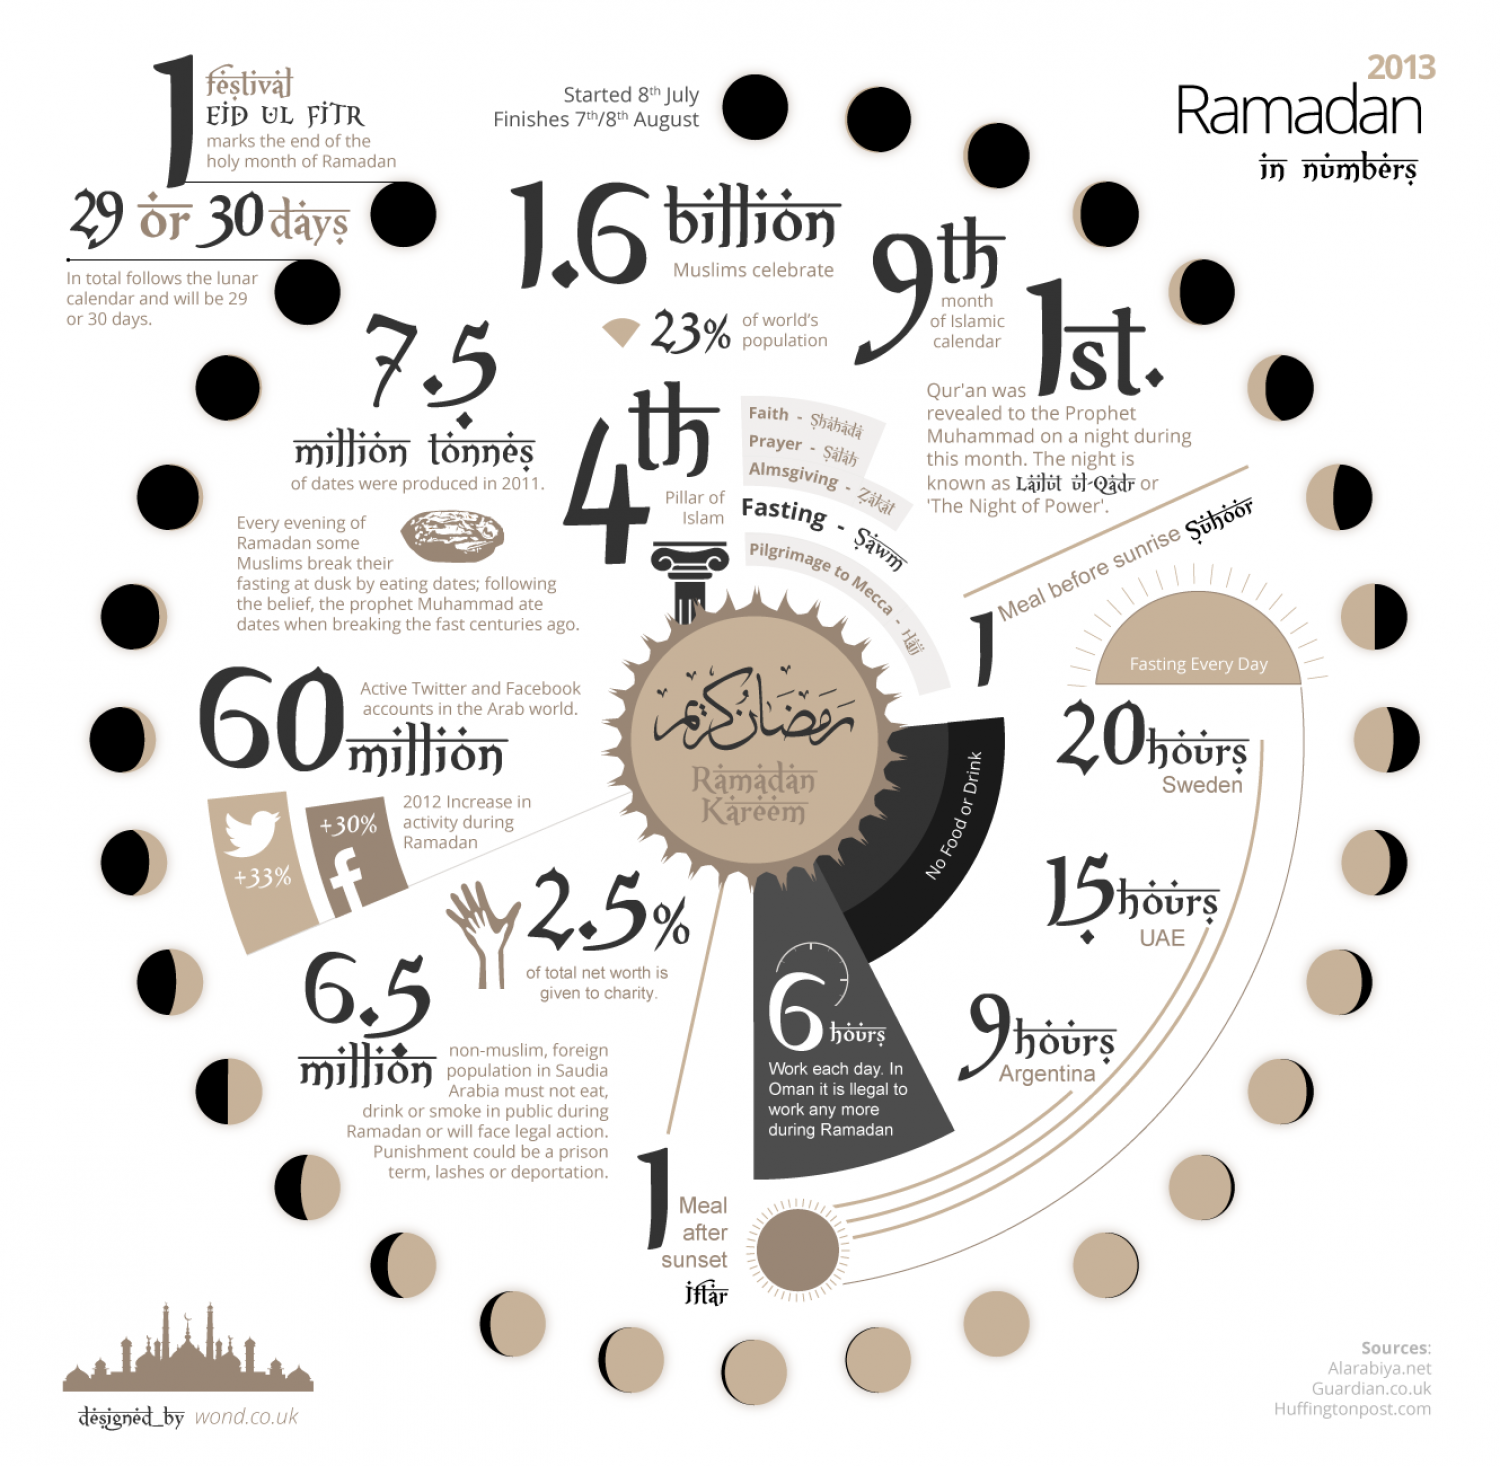 Ramadan In Numbers 2013 Infographic